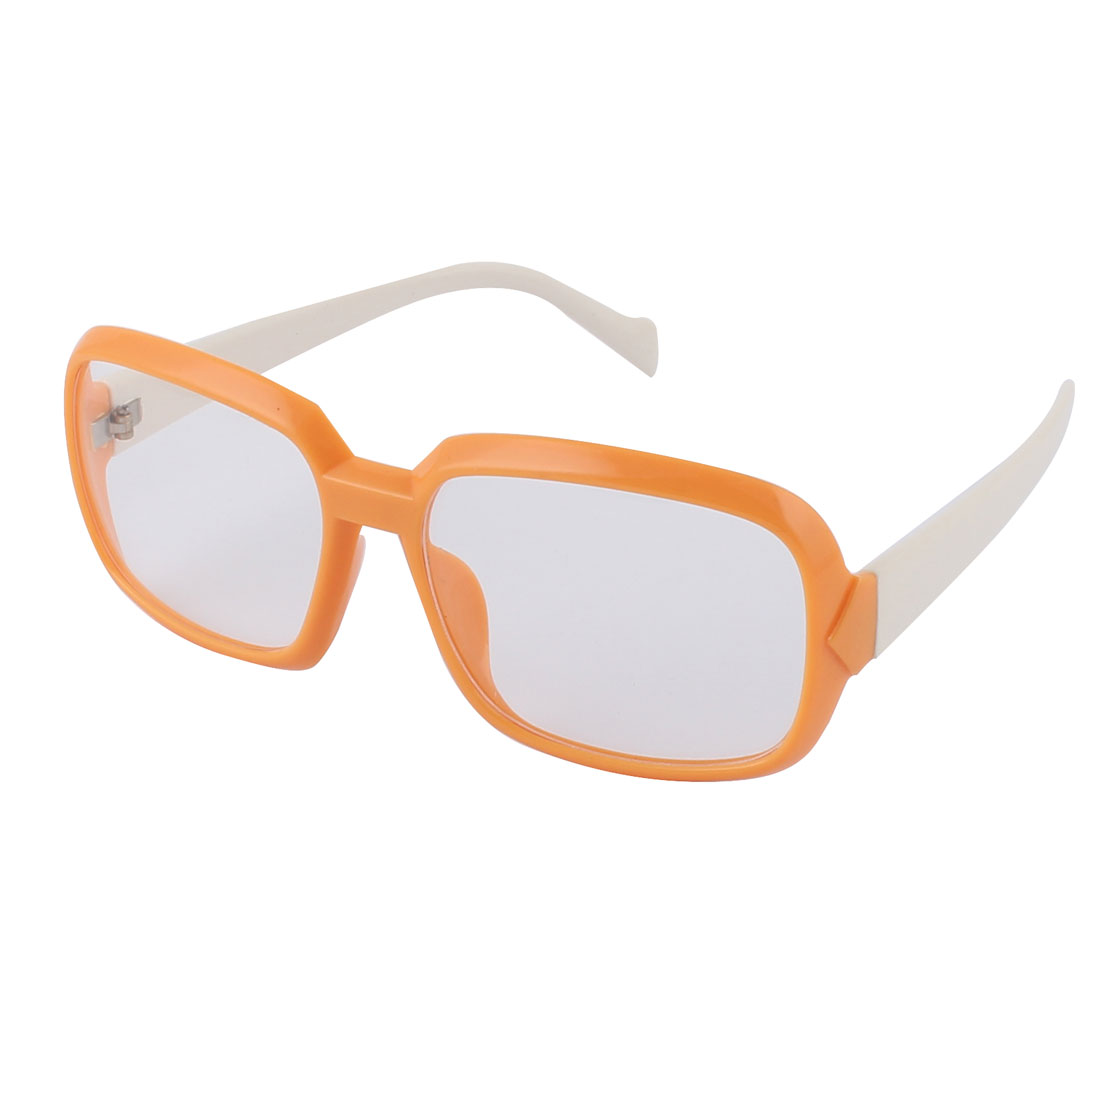 Unisex Plastic Clear Lens Oversize Fll Orange Frame White Arms Sunglass